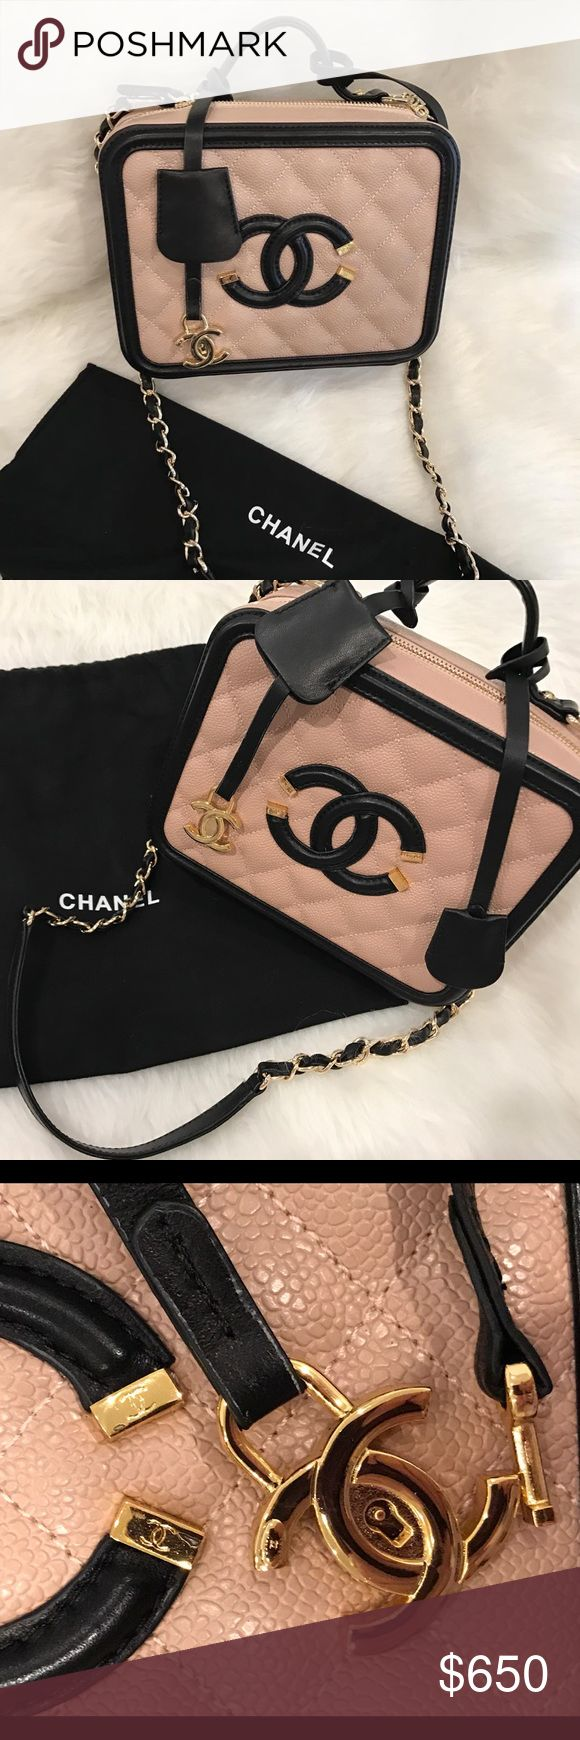 ✖️NEW✖️Camel & Black Chanel Vanity Lunch Box Bag Please note this is not the real deal but looks exactly like it. 100% leather. Brand new chanel spring 2016 two tone camel & black vanity case lunch box bag. There are no scratches or marks. Bag comes with dust bag & auth card. Bag even has auth sticker inside. This bag is soo cute and great for any chanel fan without the steep $4200 price tag. You are practically getting it for the cost of the tax on the bag. ✖️NO TRADES ✖️ PRICE IS FIRM ✖️…